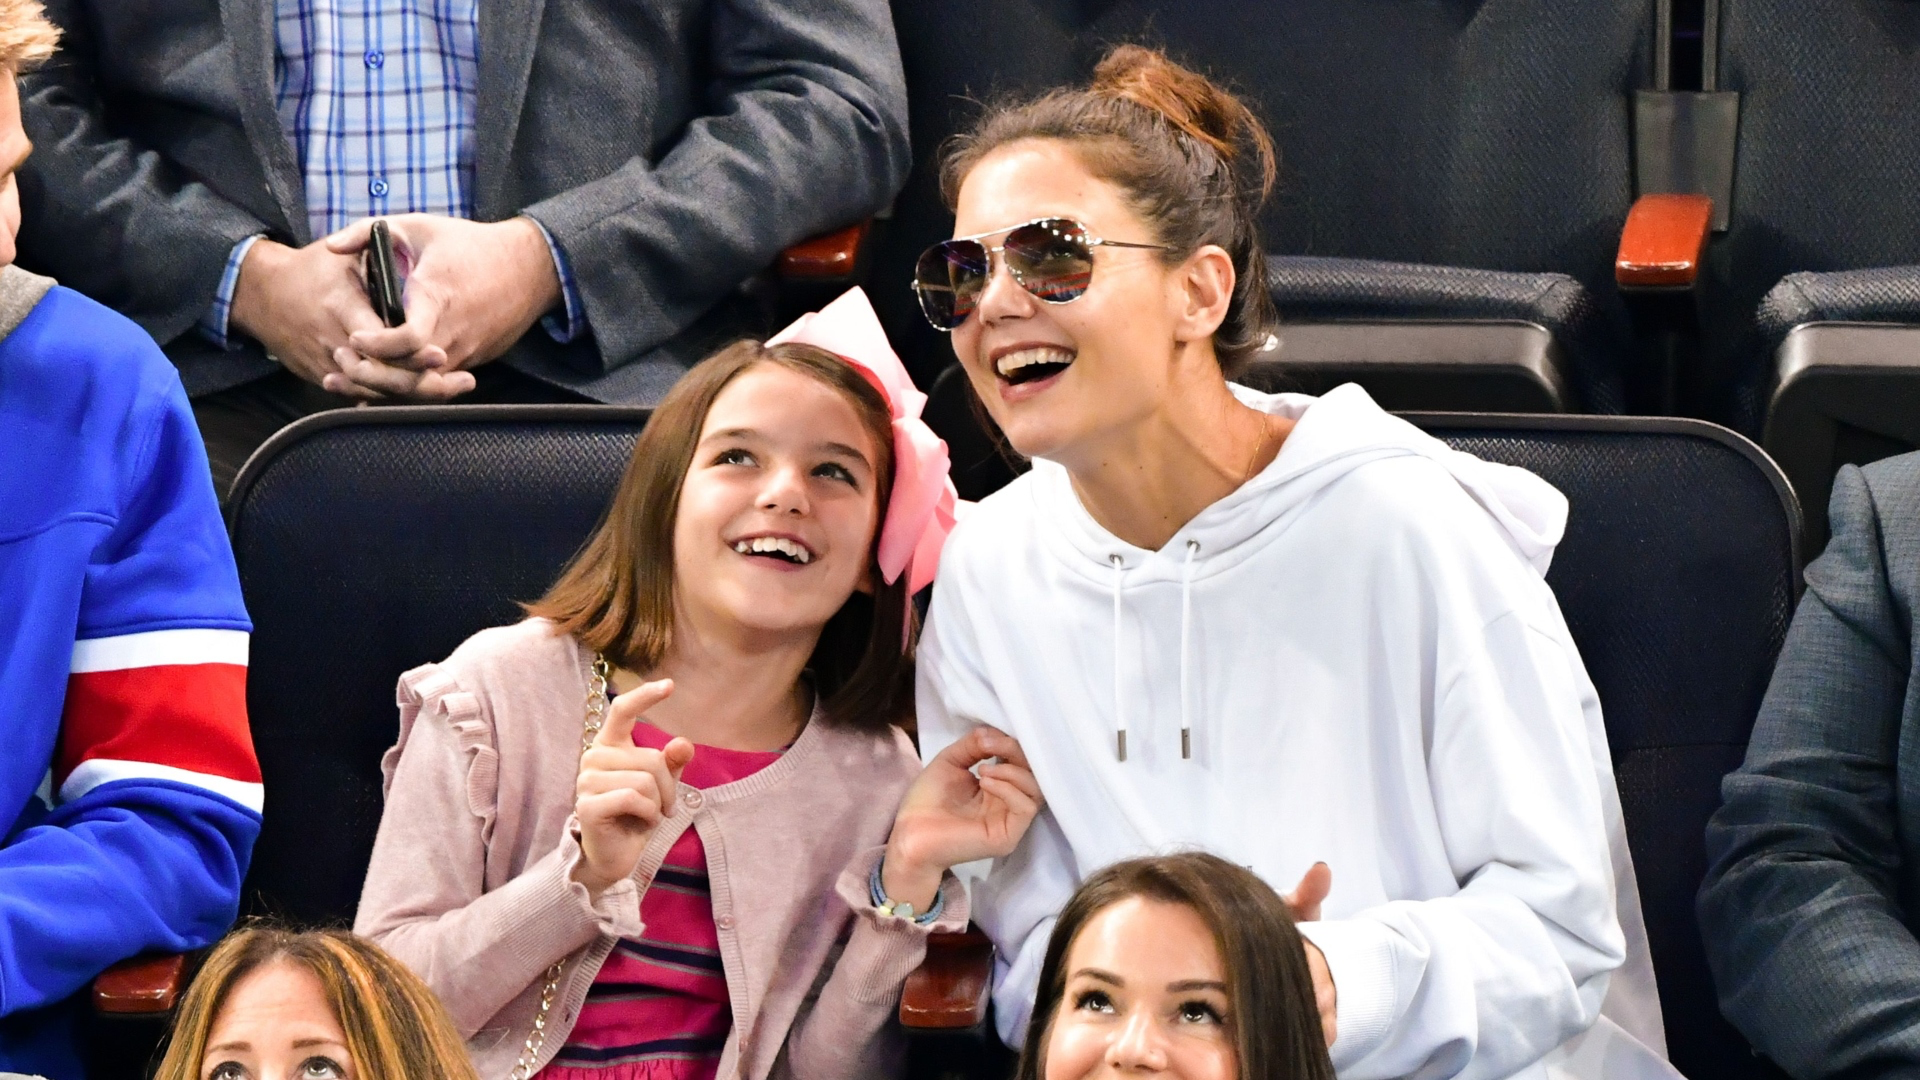 Katie Holmes Celebrates Her Daughter's Birthday With Never-Before-Seen Photos